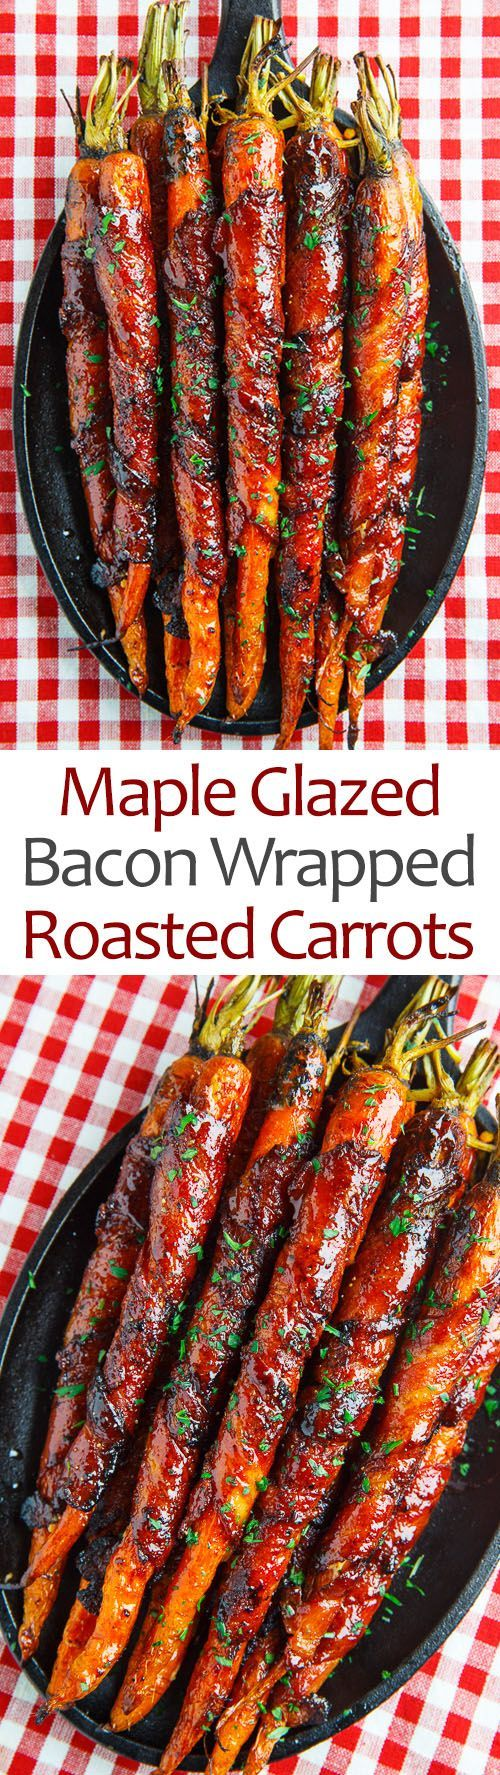 Maple Glazed Bacon Wrapped Roasted Carrots More